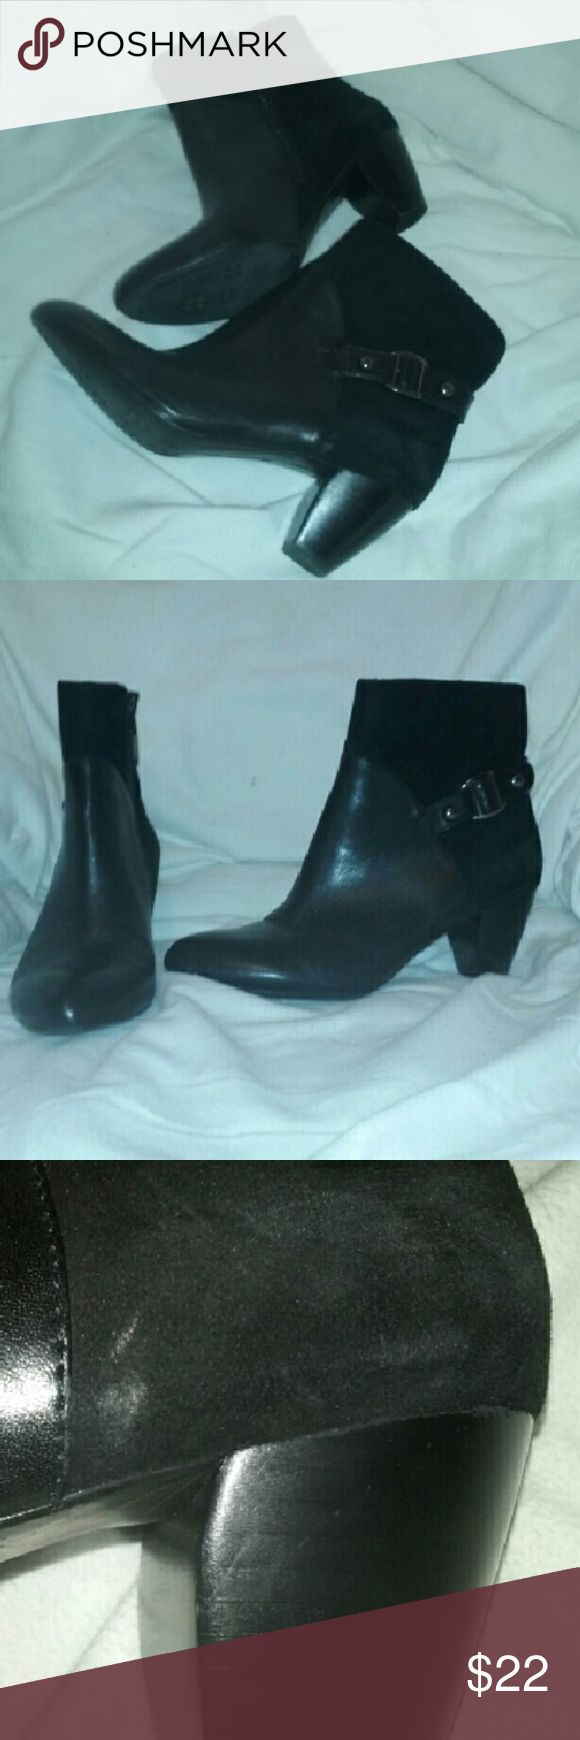 """Naturalizer ENCORE Ankle Boots Black 8.5 Wide In good, clean condition. Genuine leather and suede upper. Some wear to suede, not bad,  Approx 2 1/2"""" heel. Size 8 1/2 W ((Wide). Naturalizer Shoes"""